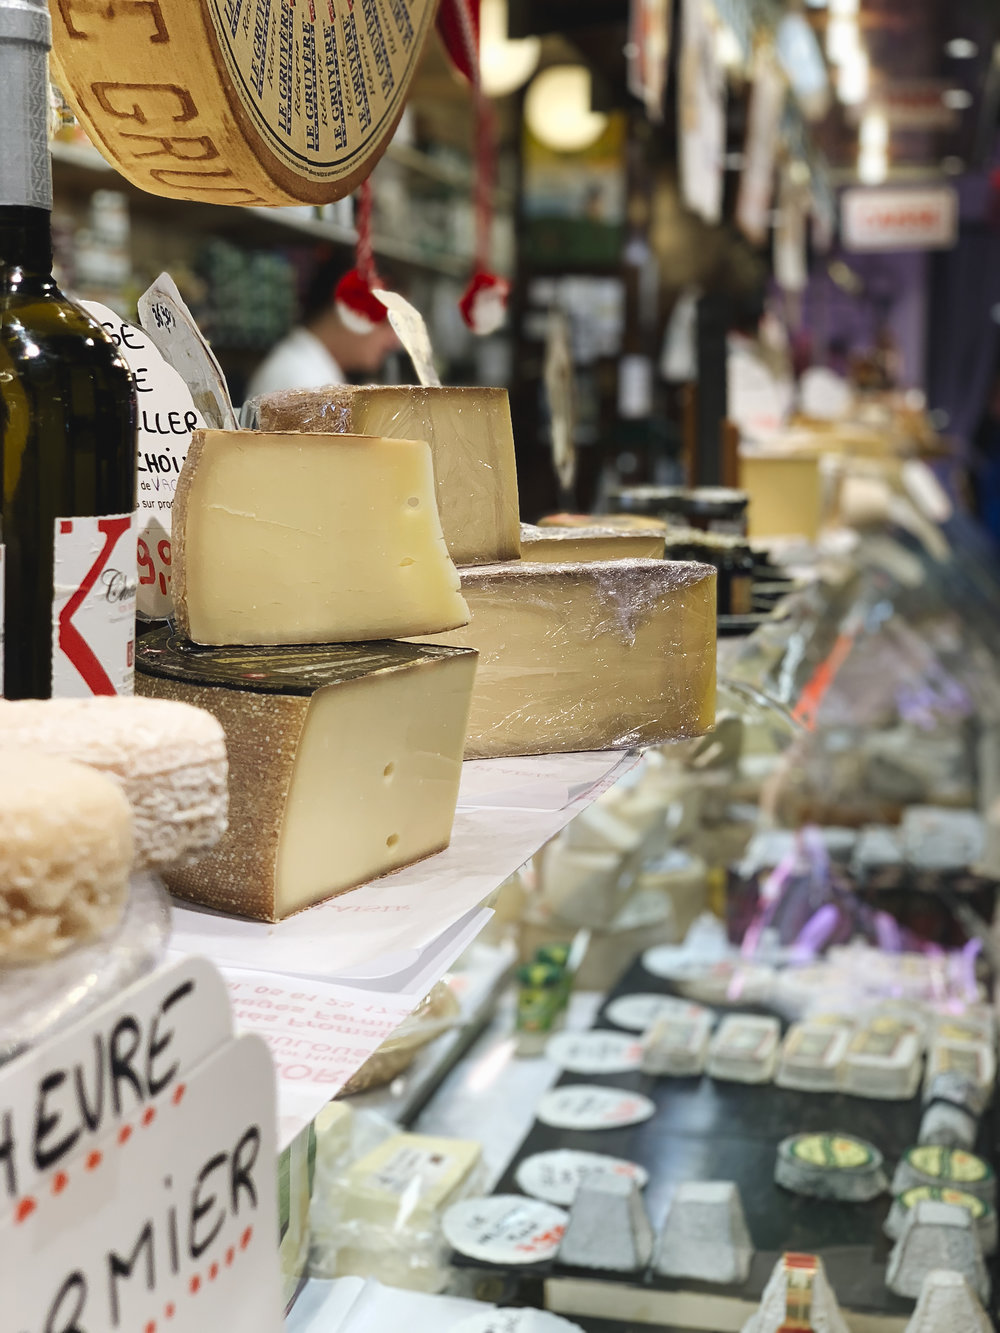 chrissihernandez-france-toulouse-market-01.jpg